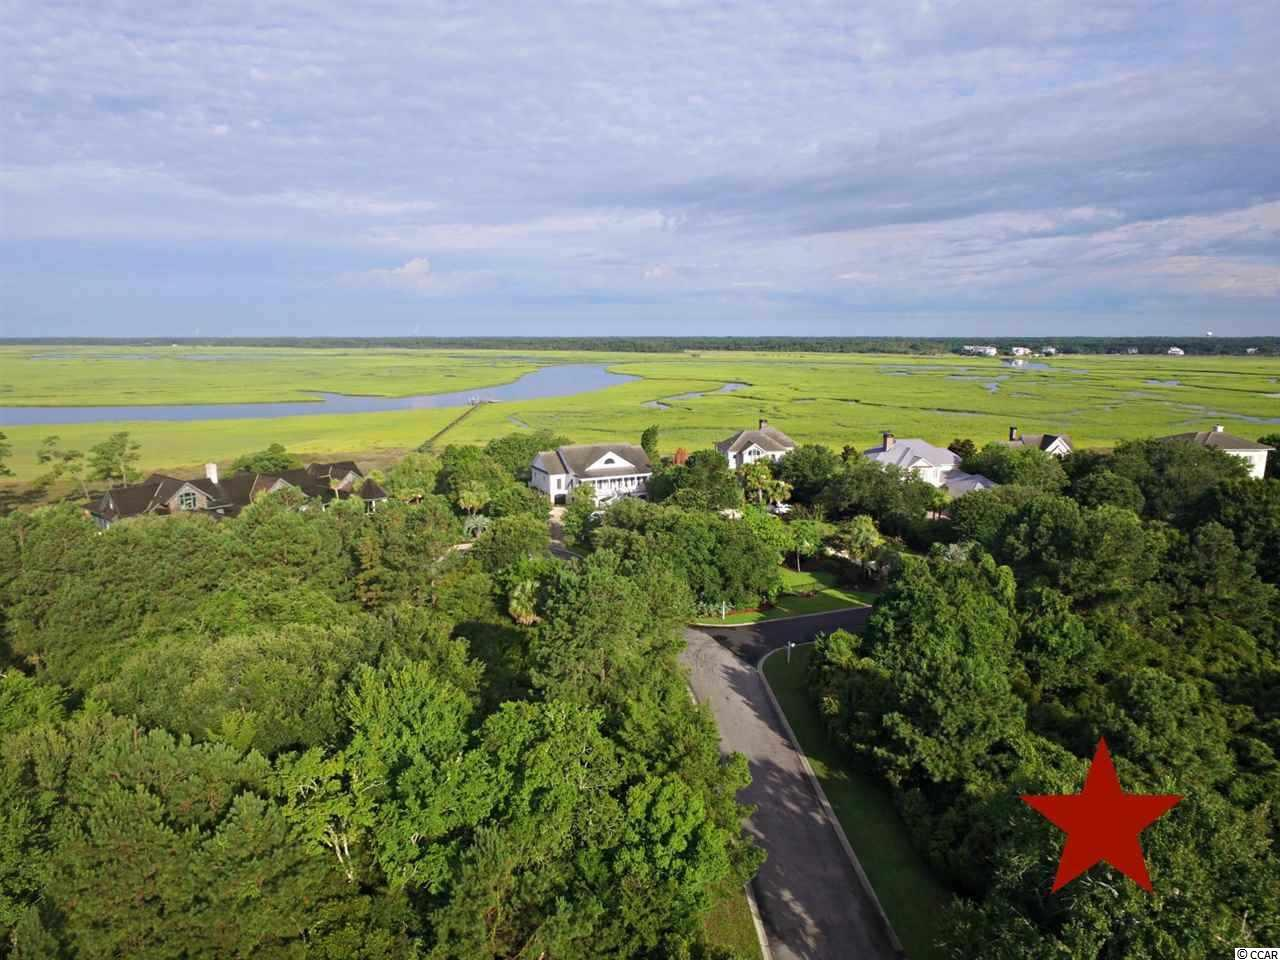 DeBordieu Colony - This extra wide, waterfront lot is just steps from the private, Ocean Green beach access to the 2 1/2 miles of secluded, undeveloped beach at Hobcaw Barony, the nature preserve next door to DeBordieu Colony. Build the exact home you want with a spectacular, long view of the lagoon, home to many types of waterfowl and fish. If you build a roof top deck on your raised home, you'll enjoy views of the ocean and of the marshes and creeks of North Inlet. Featuring gorgeous Live Oaks, the dimensions of this special piece of paradise are 166 x 232 x 72 x 167. DeBordieu Colony is a very private community on the coast of South Carolina, between Charleston and Myrtle Beach, just south of Pawleys Island. In addition to 6.5 miles of secluded beach, boat landing access to North Inlet, and a 24-hour manned security gate, the private, equity DeBordieu Club offers Pete Dye golf, a tennis and fitness center and an ocean front Beach Club with fine dining, a gazebo bar, two pools, and a playground.  Can't find the perfect house? Build it on the perfect spot! There is truly no place like DeBordieu Colony. Come see for yourself!